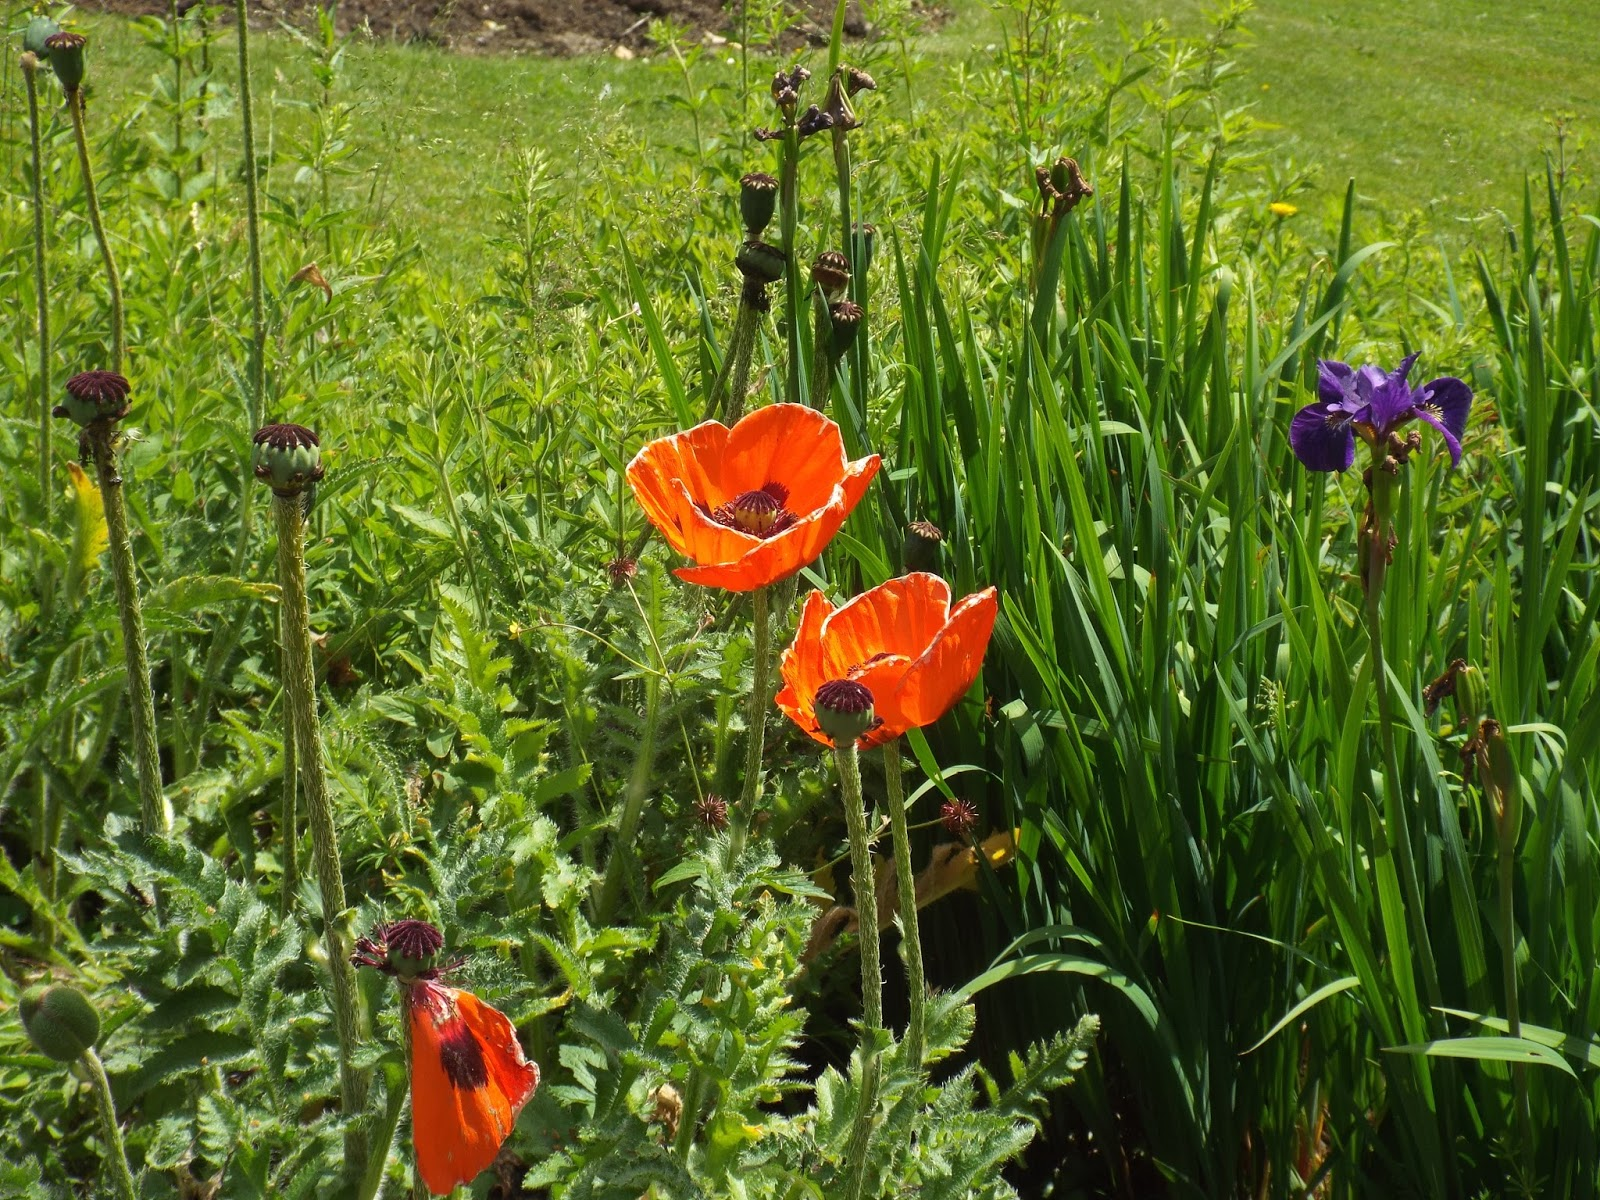 sylvia plath poppies in july essay College of arts and humanities engl243 what is poetry bernal poppies in july, poppies in october comparison essay well-renowned poet sylvia plath is known for her constant life struggles.